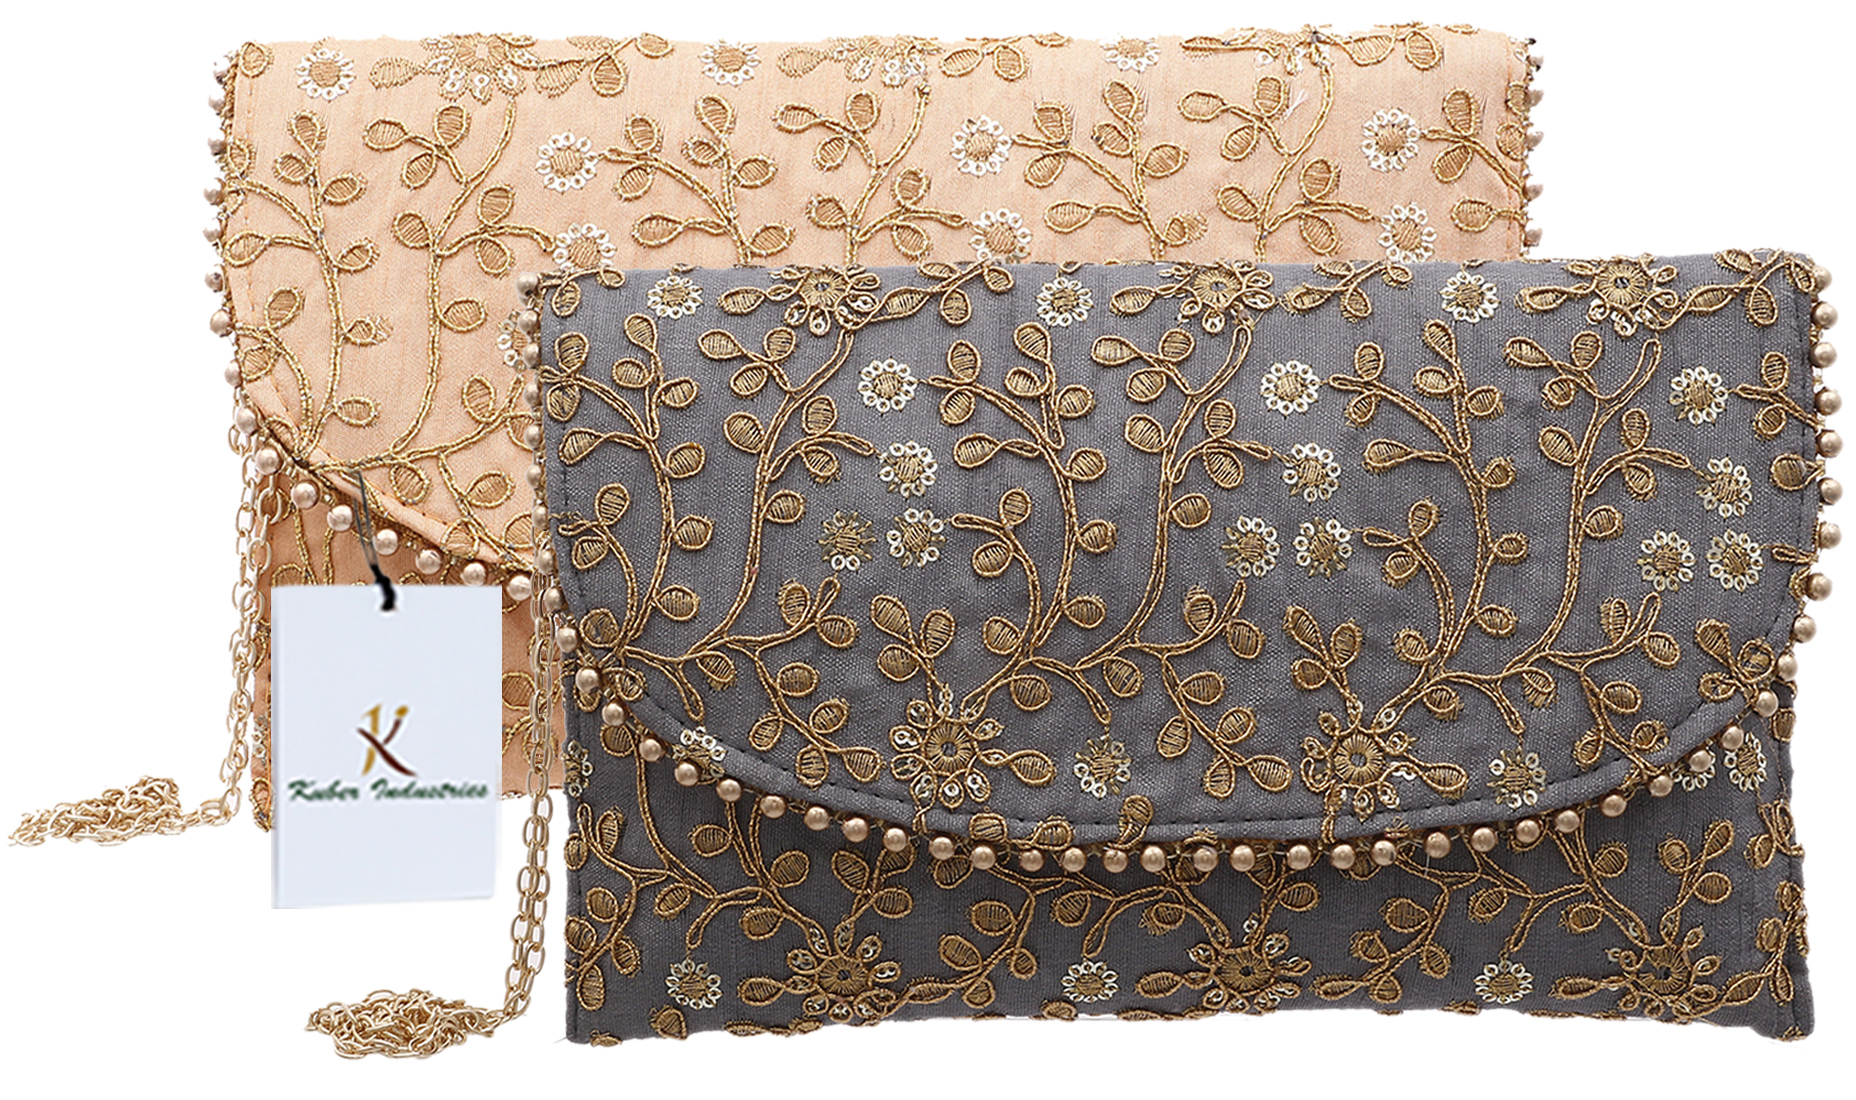 Kuber Industries Handcrafted 2 Pieces Embroidered Party Wear Clutch Bag Purse Handbag For Bridal, Casual, Party, Wedding (Grey & Peach) - CTKTC34535